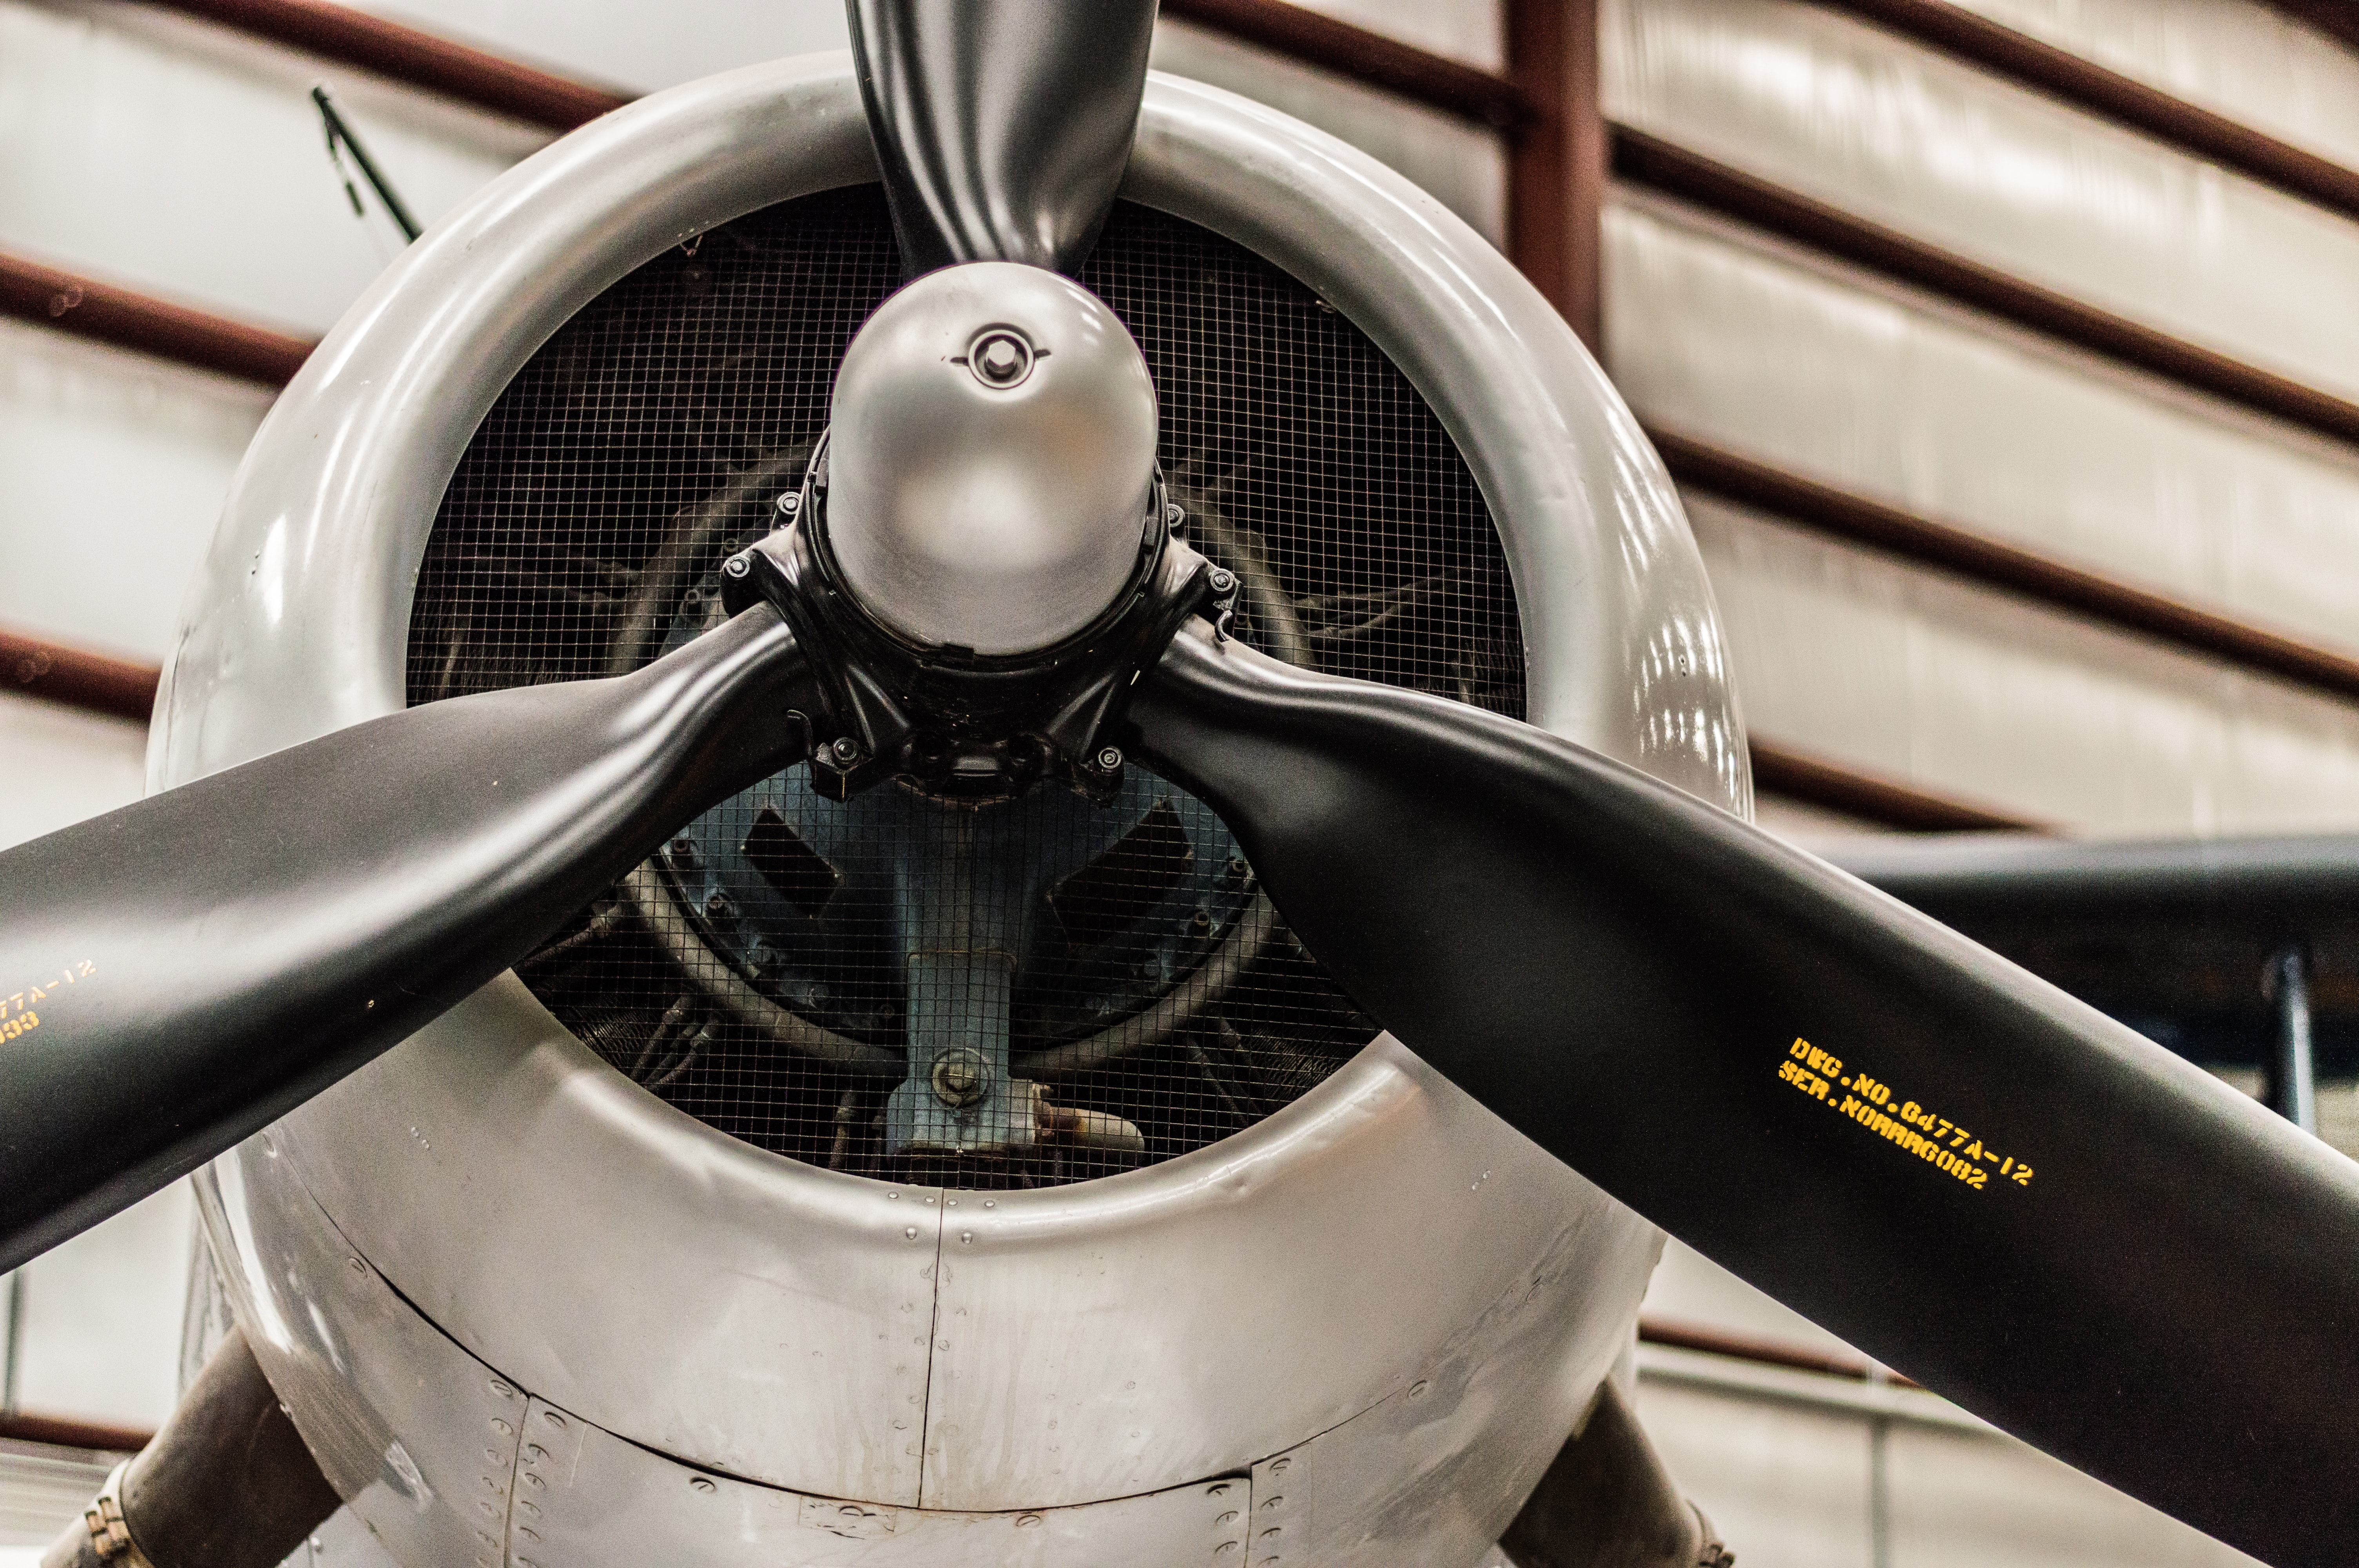 close up photography of plane's propeller